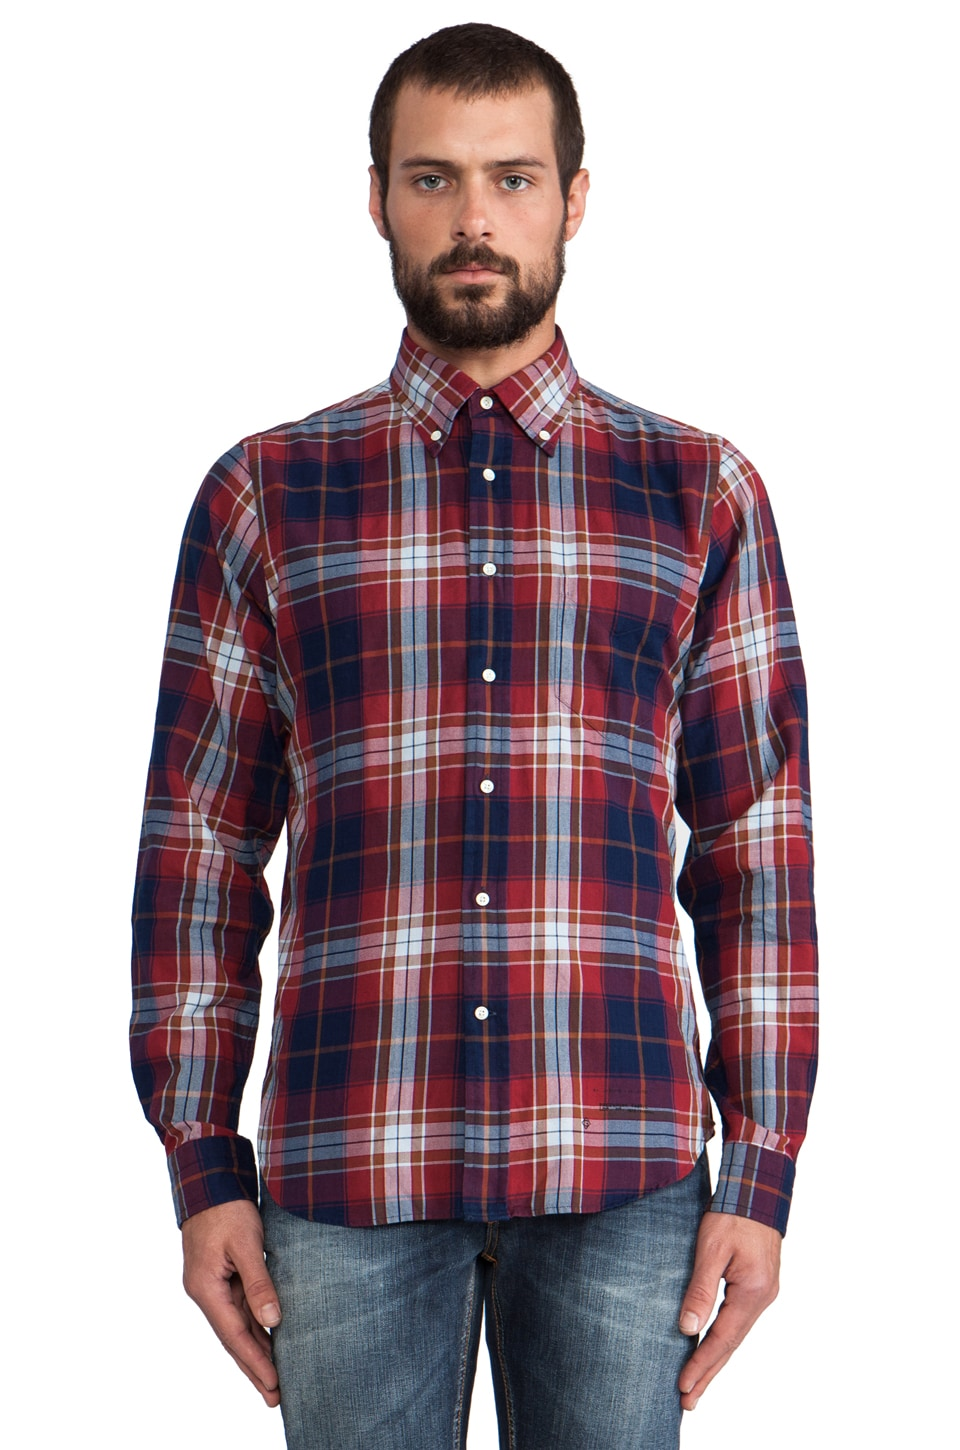 GANT Rugger Indigo Twill Button Down in Red/Blue